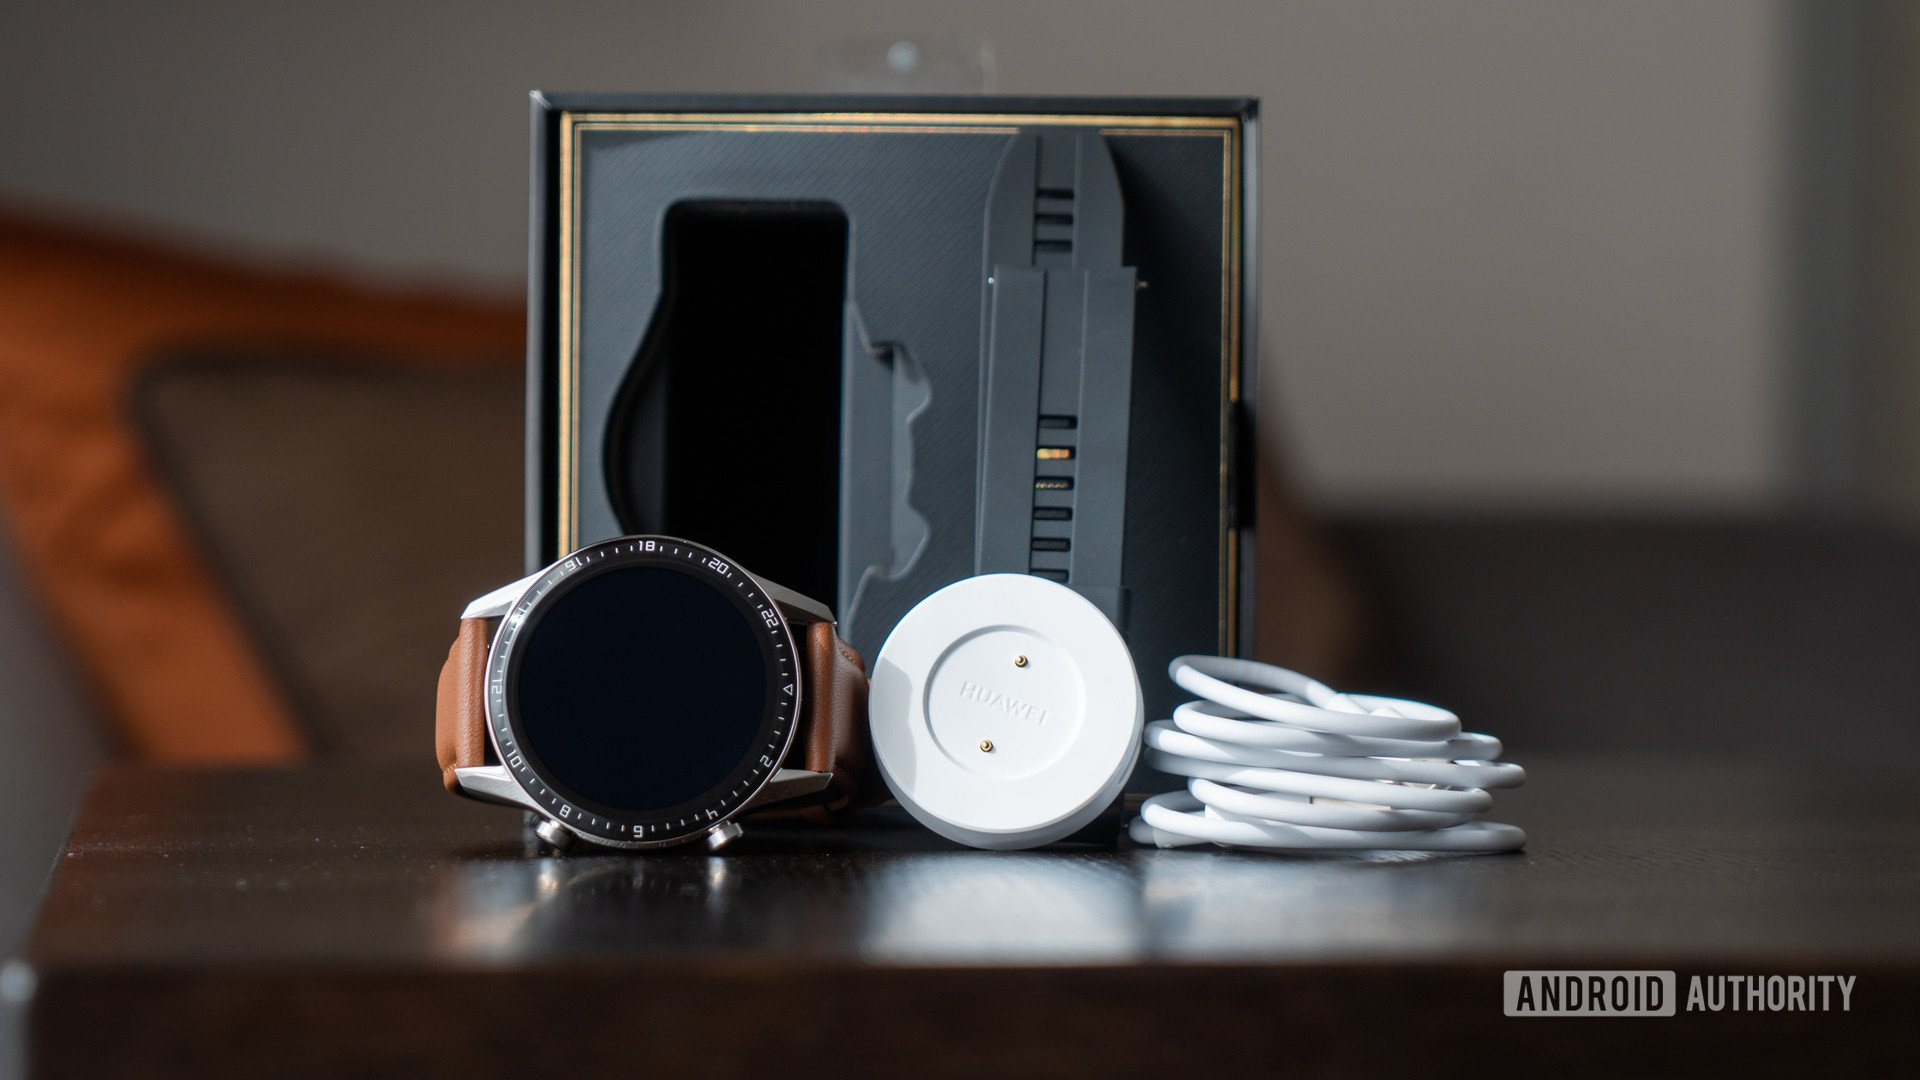 Huawei Watch GT 2 contents spilled out of box